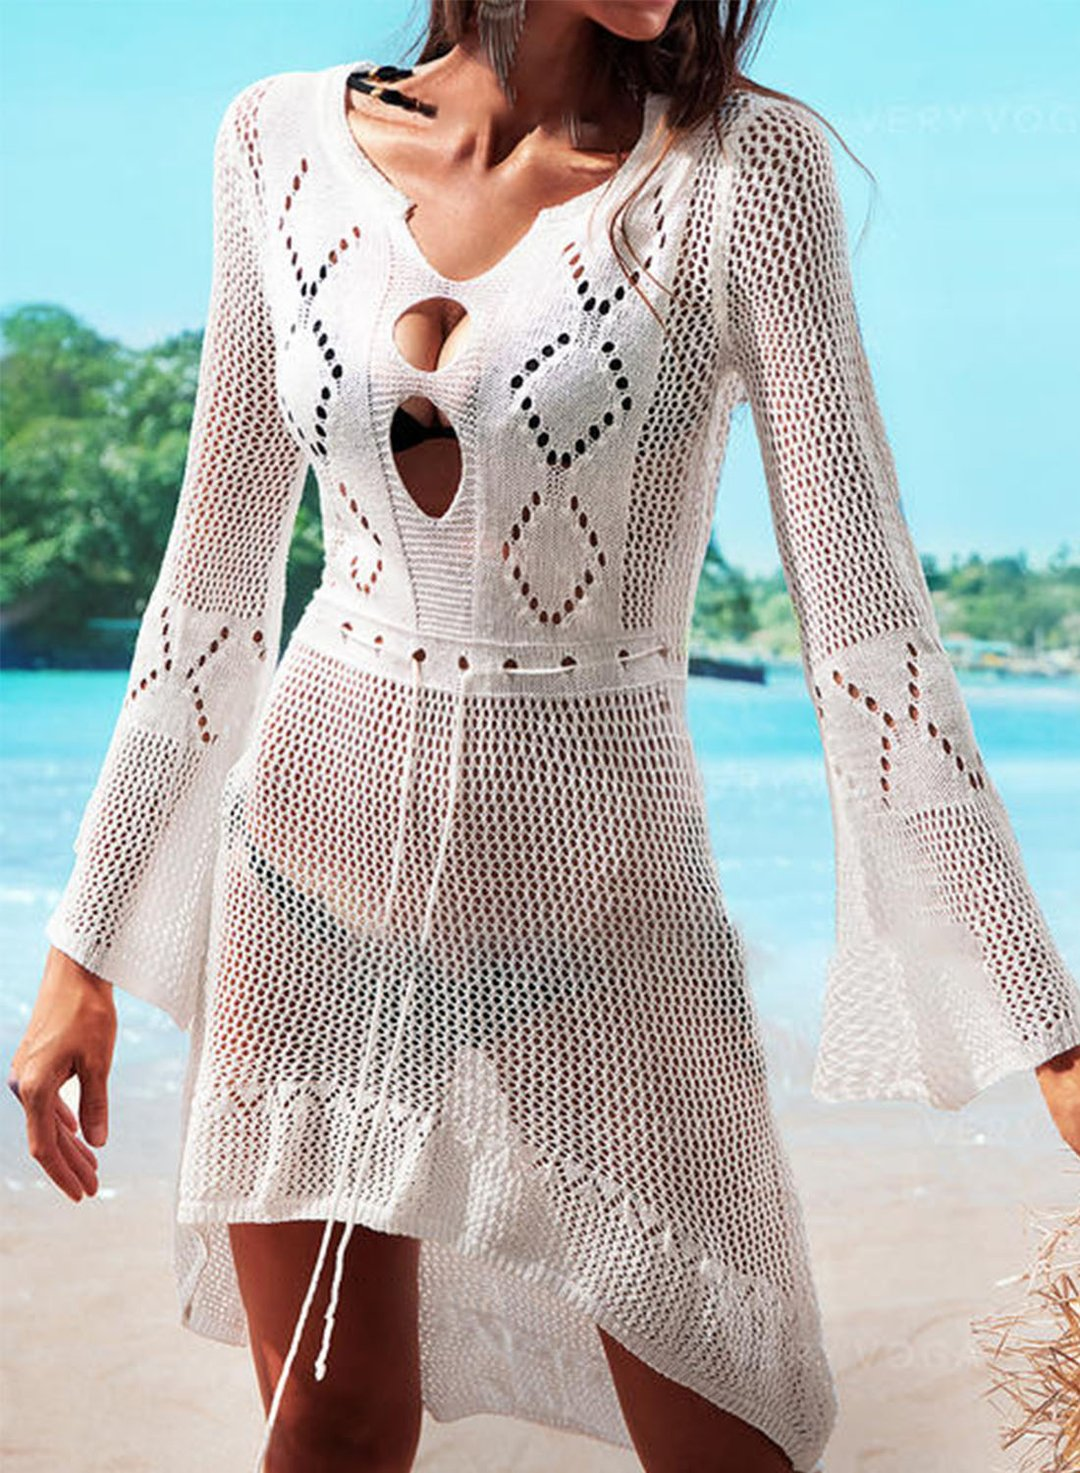 White Women's Dresses Solid Cut-out Drawstring Beach Mini Dress LC42916-1